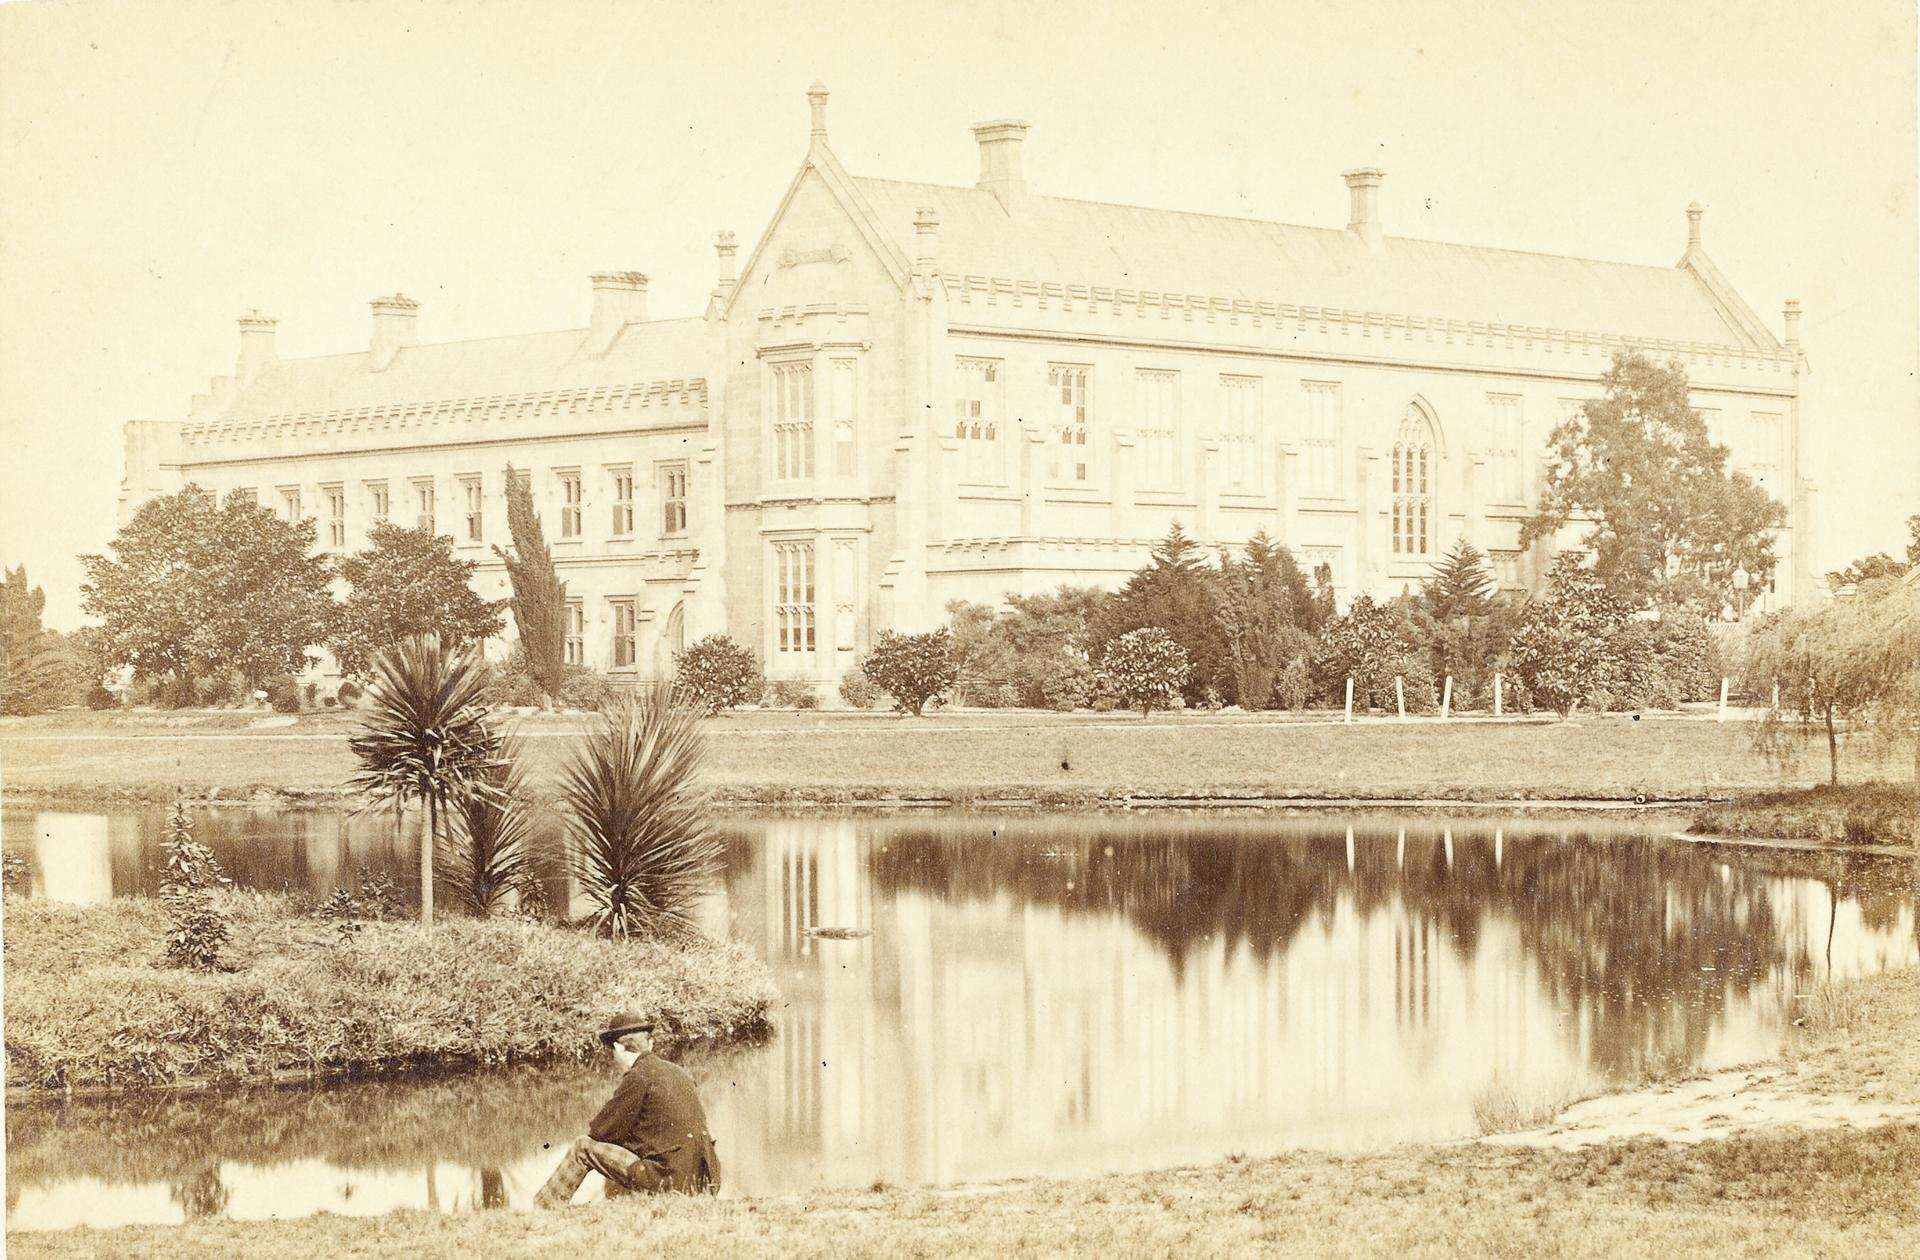 Quadrangle, North wing and lake